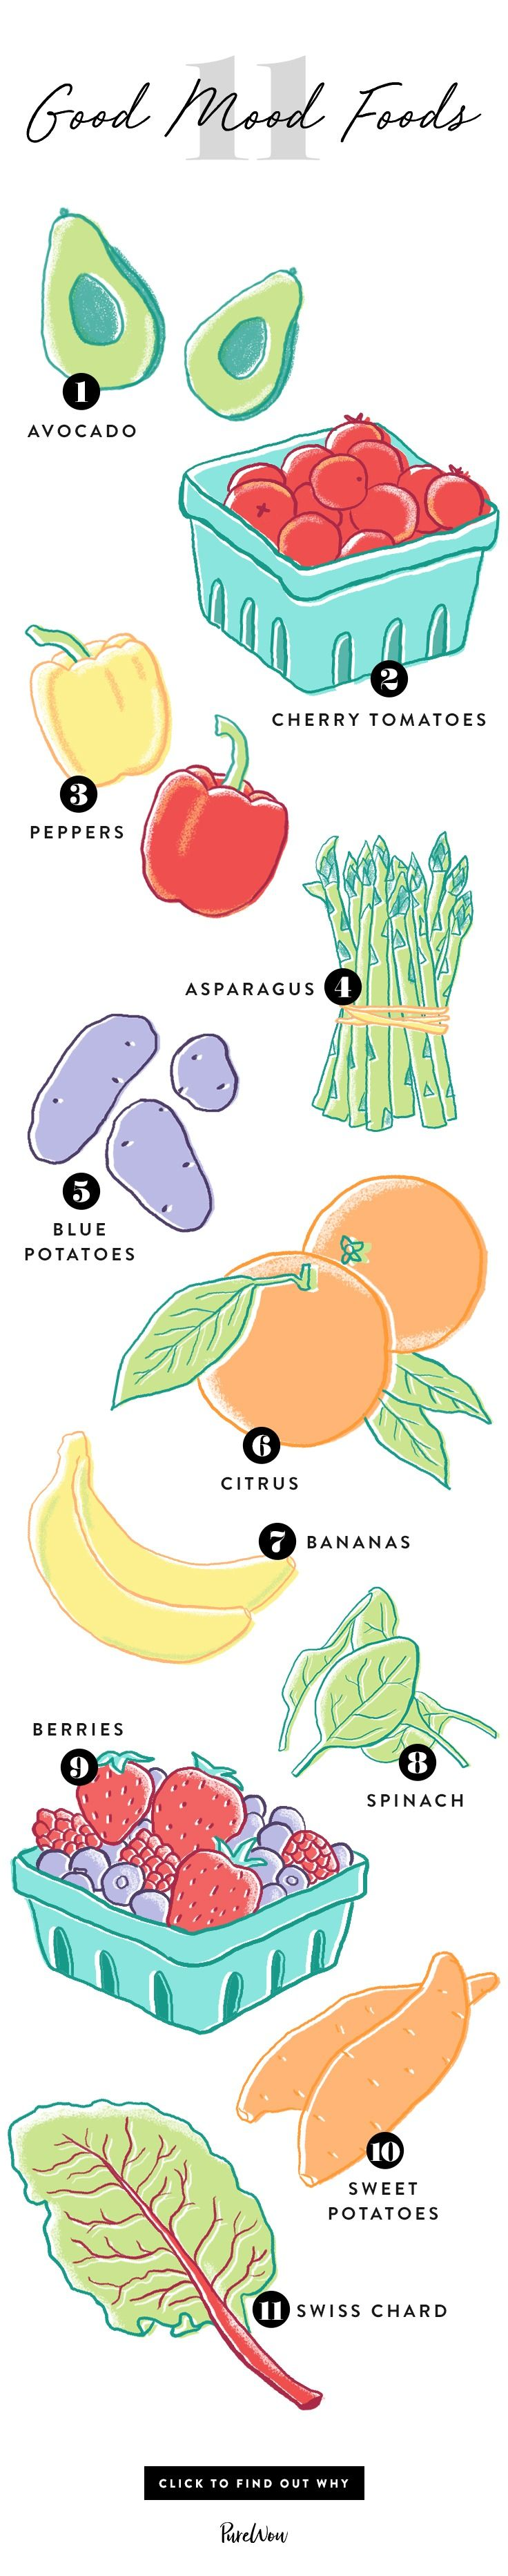 A study by the American Journal of Public Health has found that eating fruits and veggies can actually help improve your mental health. Subjects reported increased happiness for each additional serving they ate in a day. So the next time you're feeling down, reach for one of these 11 foods.